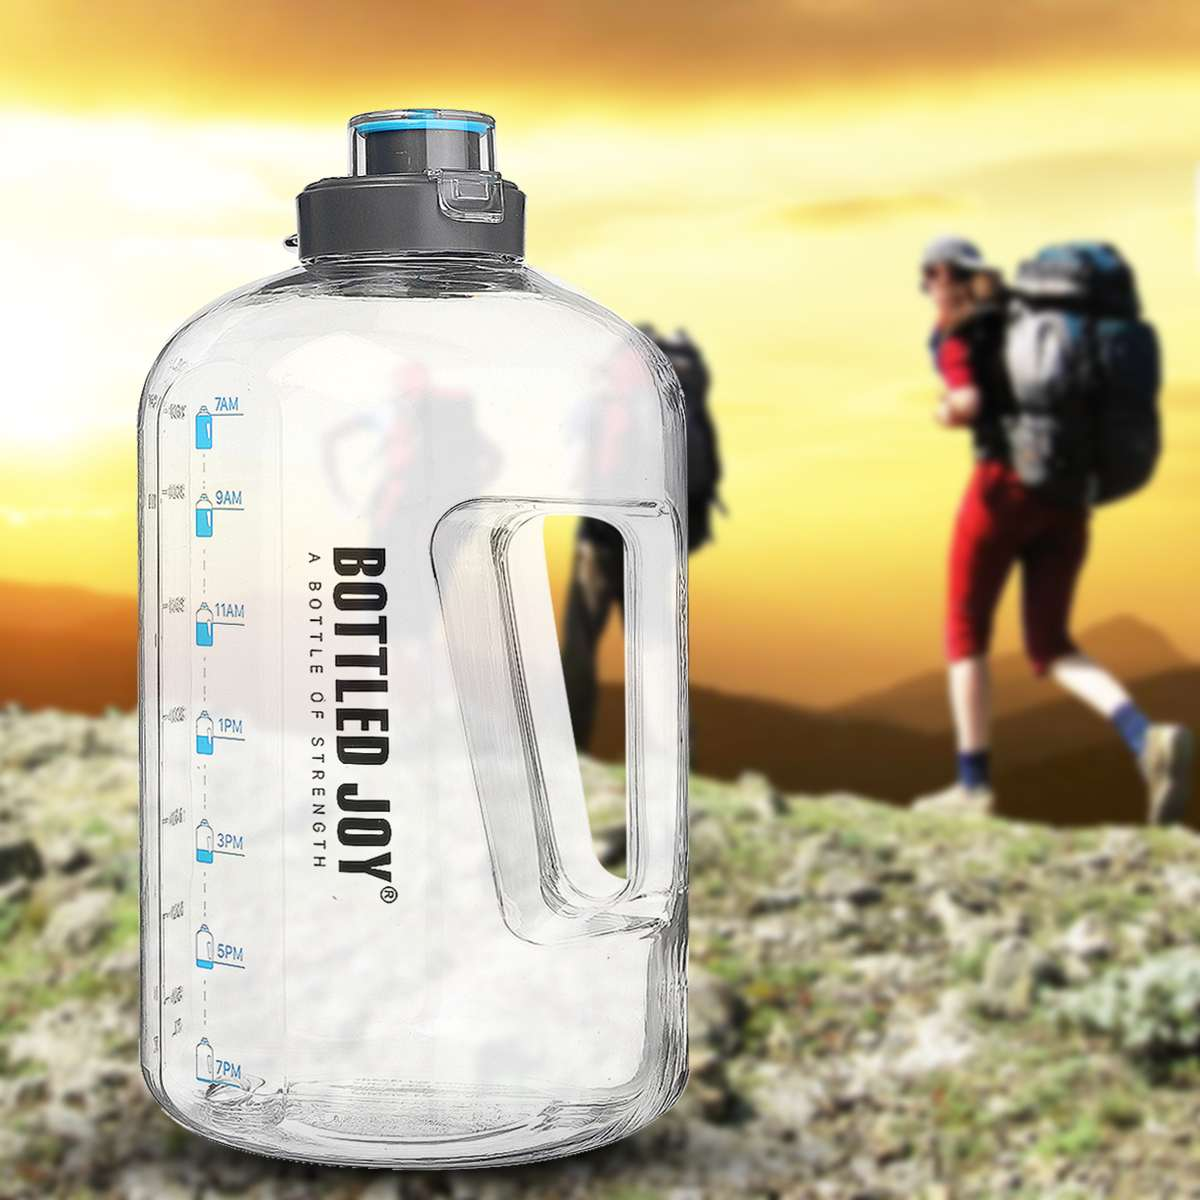 3.78L 1 Gallon Water Bottle with Stainless Steel Carabiner Clear Plastic <font><b>Drinking</b></font> Bottles Big GYM Jug Cup BPA Free GYM Sports image